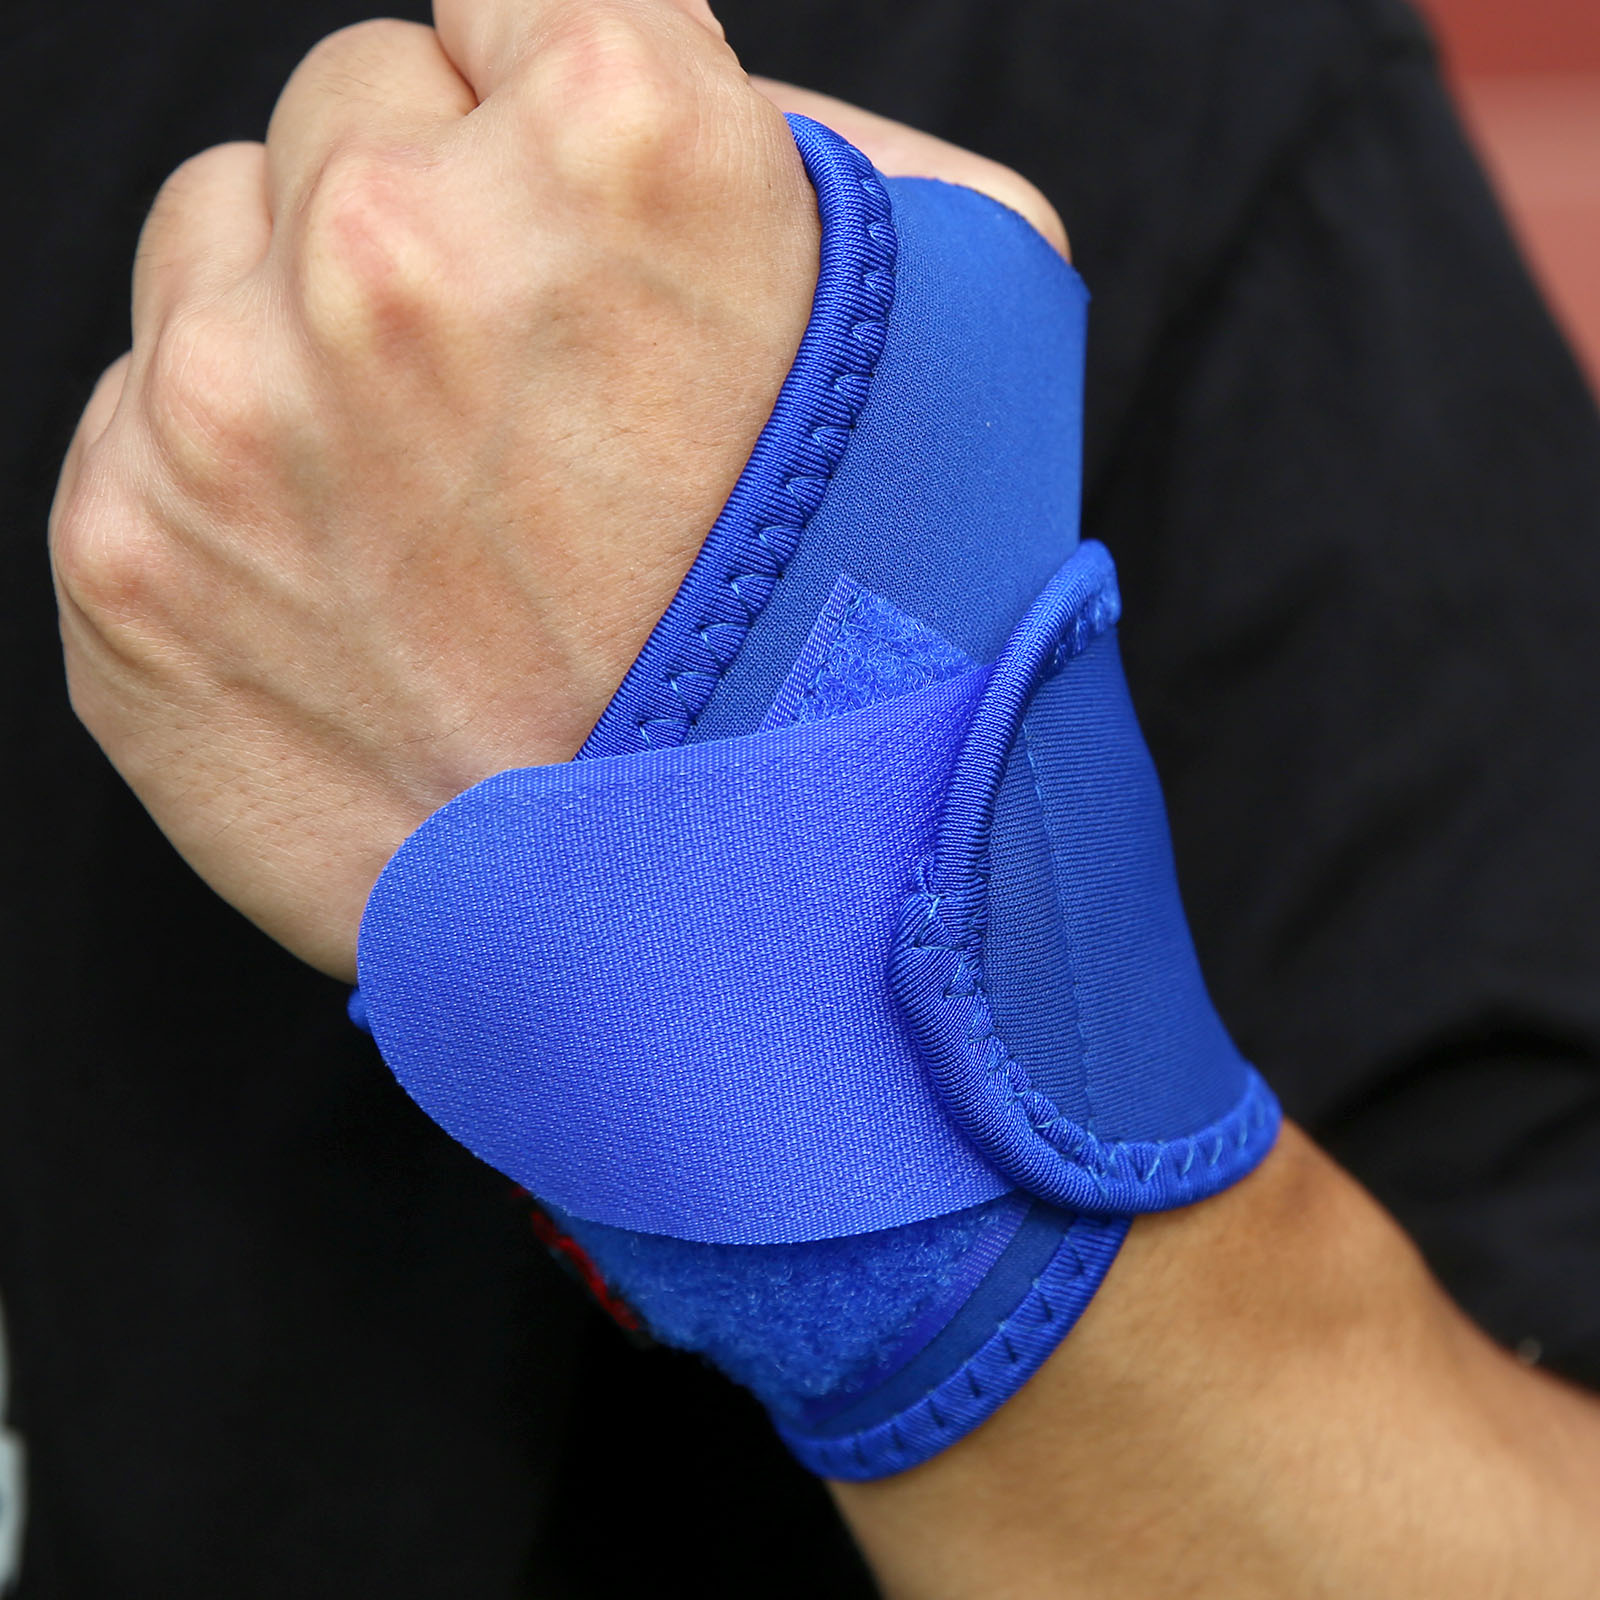 1Pc Blue/Black Outdoor Sports Safety Wrist Support Wristband Carpal Breathing Wrist Support Strap Brace Arthritis Sprain Protect